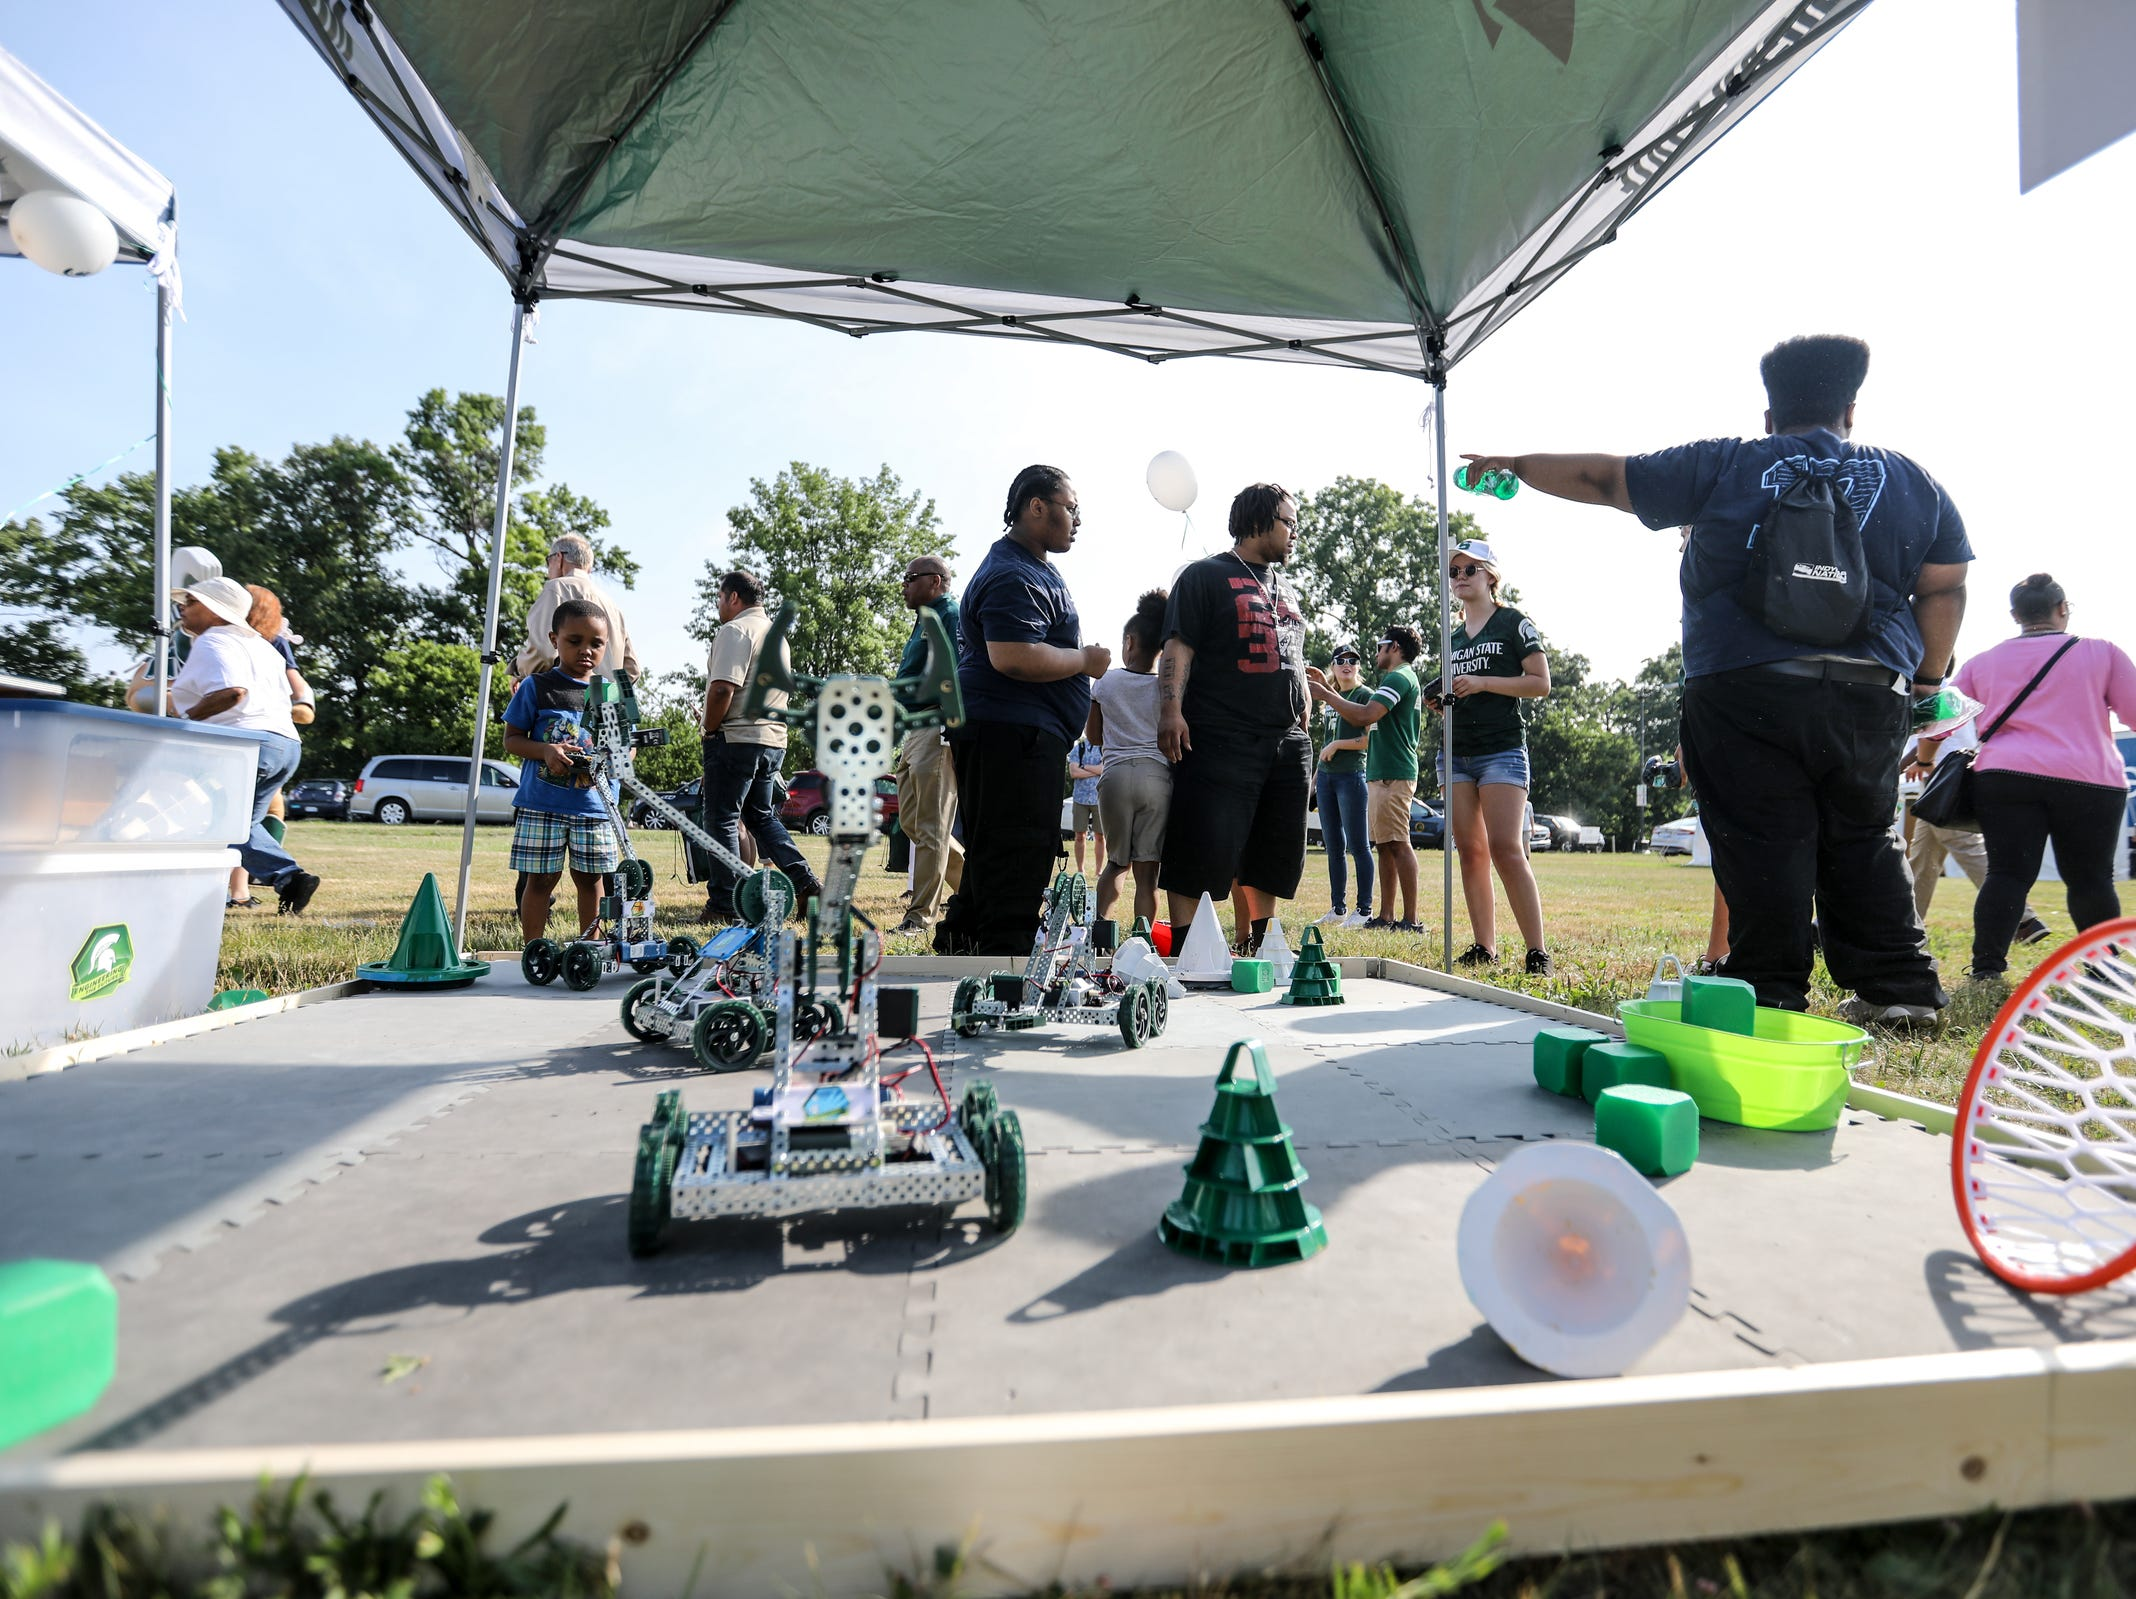 A Michigan State University engineering booth features robotics during Metro Detroit Youth Day at Belle Isle in Detroit on Wednesday, July 11, 2018.